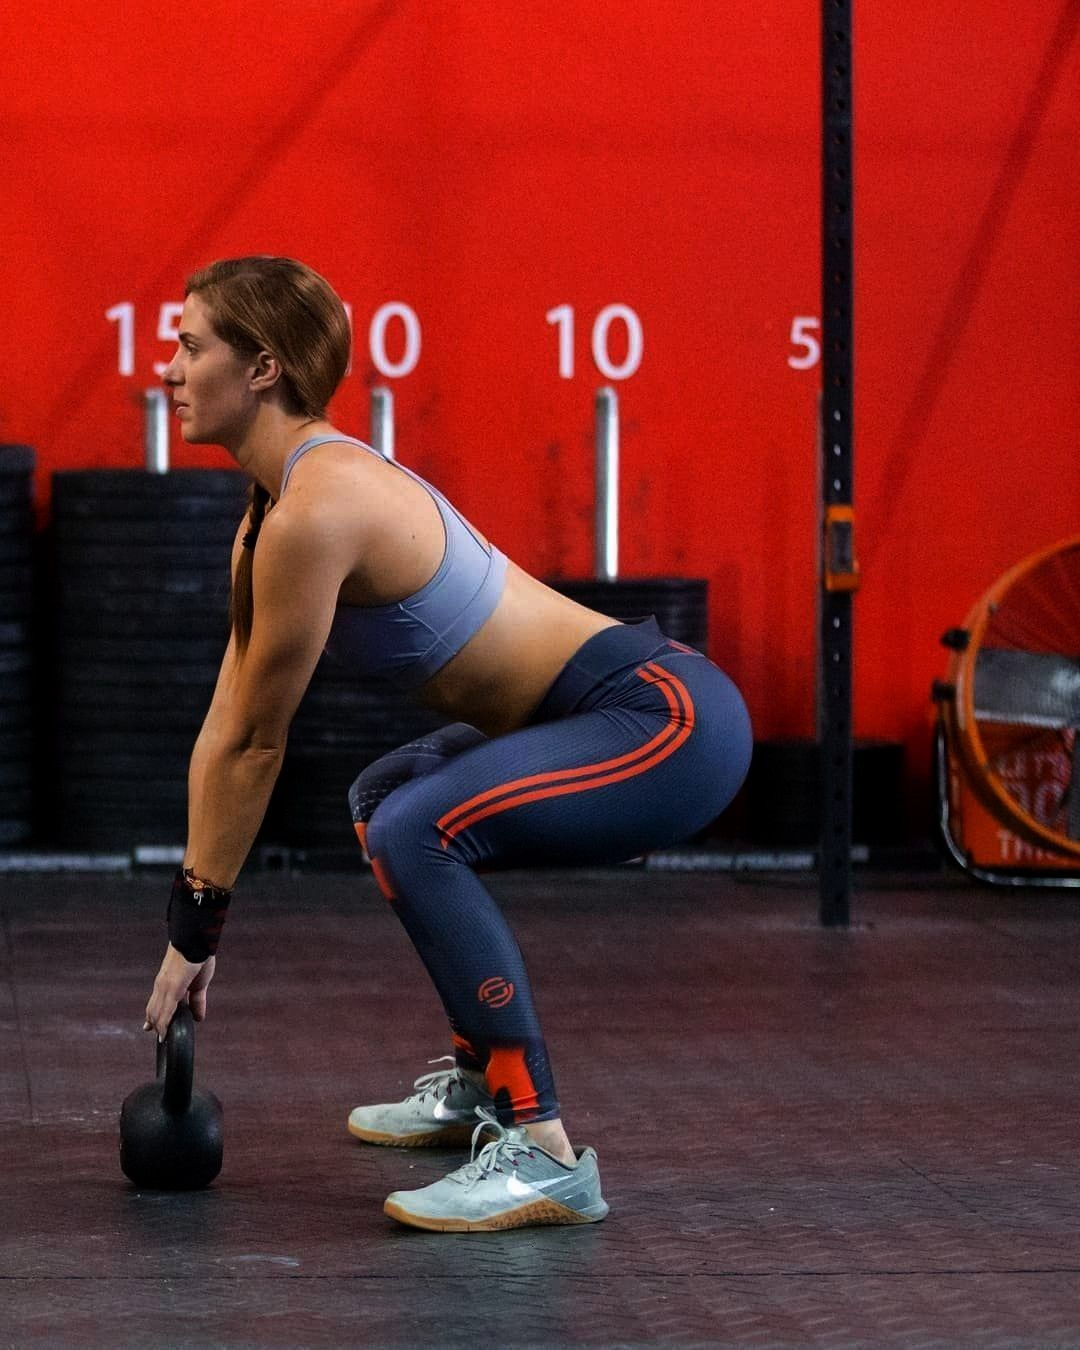 with which you can completely define your body -  Dips, squats or planks: these are the only five e